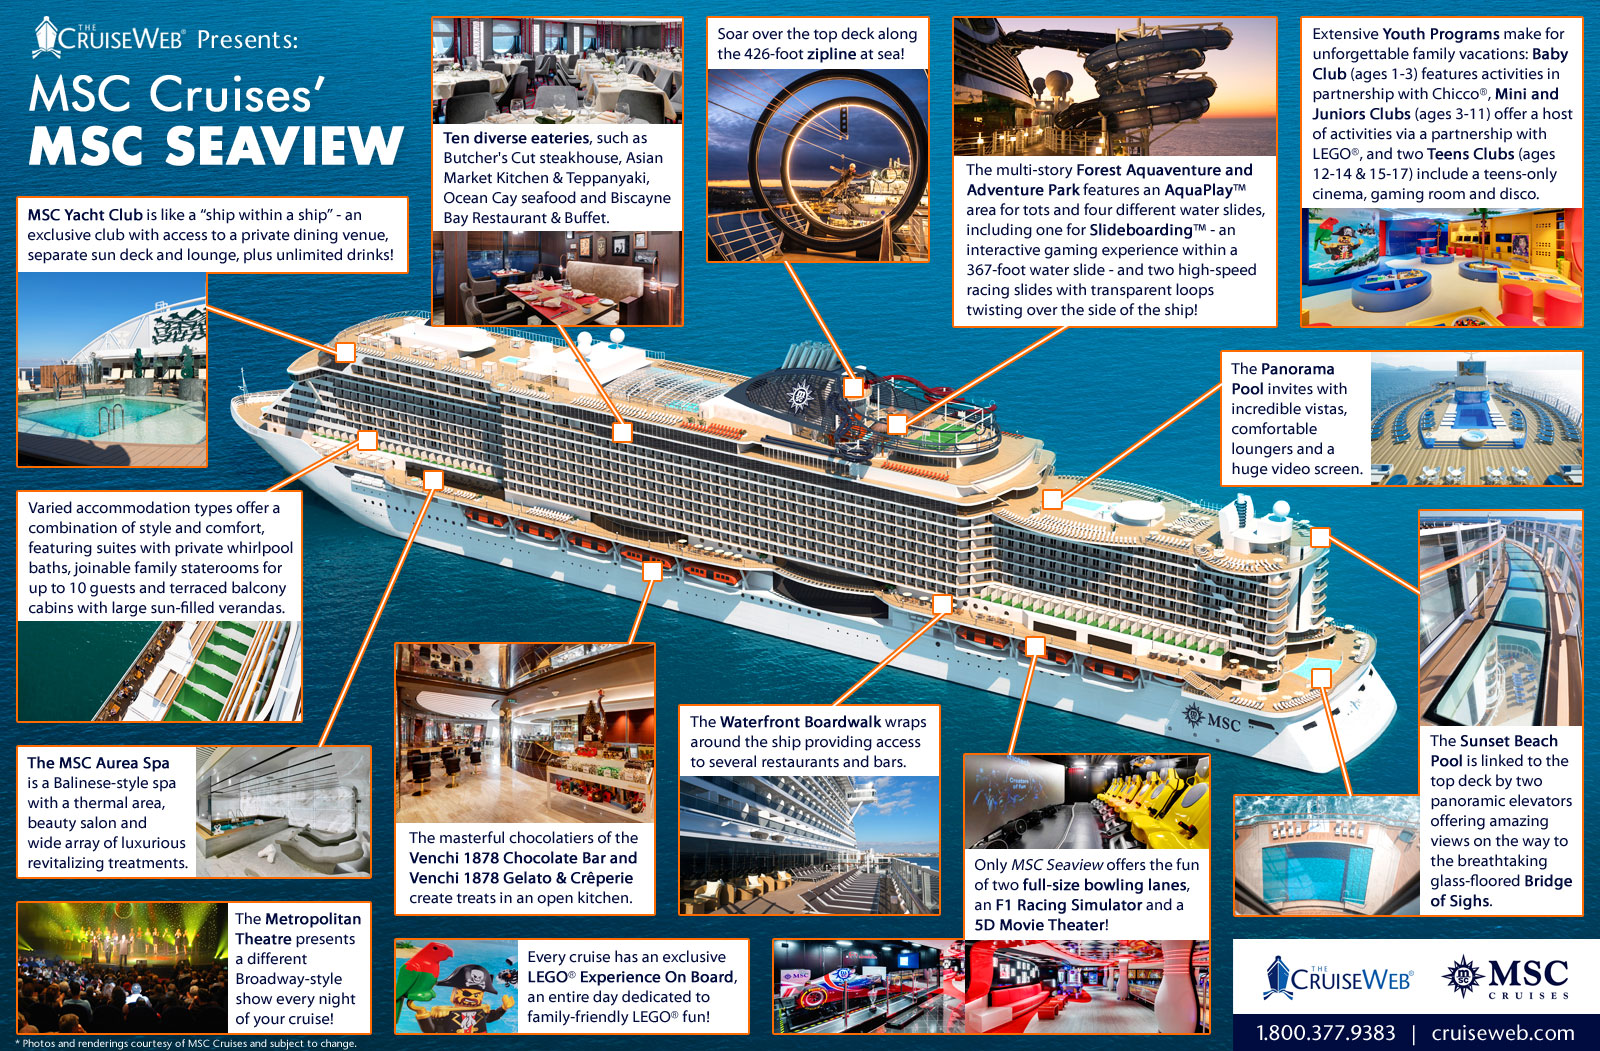 Explore MSC Cruises' Newest Cruise Ship, MSC Seaview, with ...